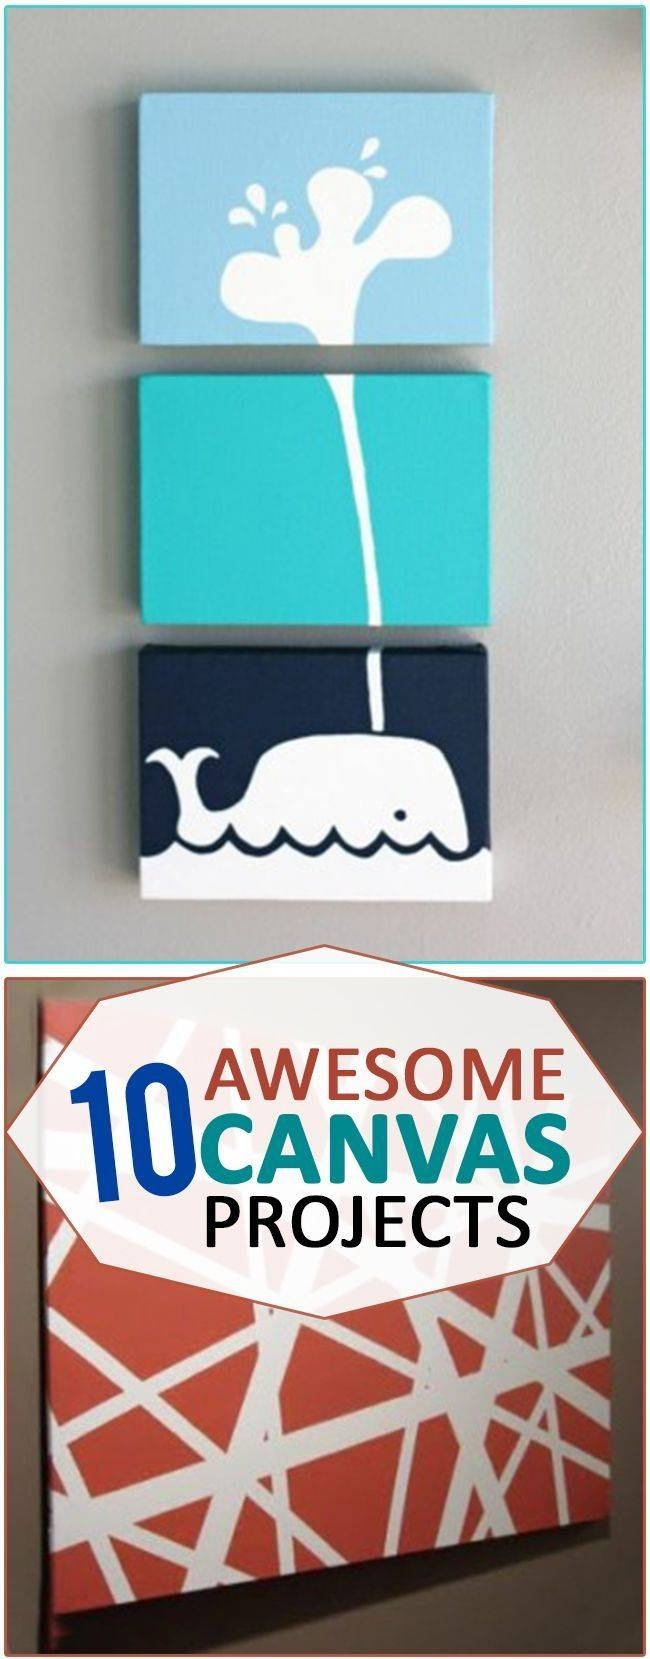 25+ Unique Diy Canvas Ideas On Pinterest | Diy Canvas Art, Puff With Recent Diy Pinterest Canvas Art (View 10 of 25)